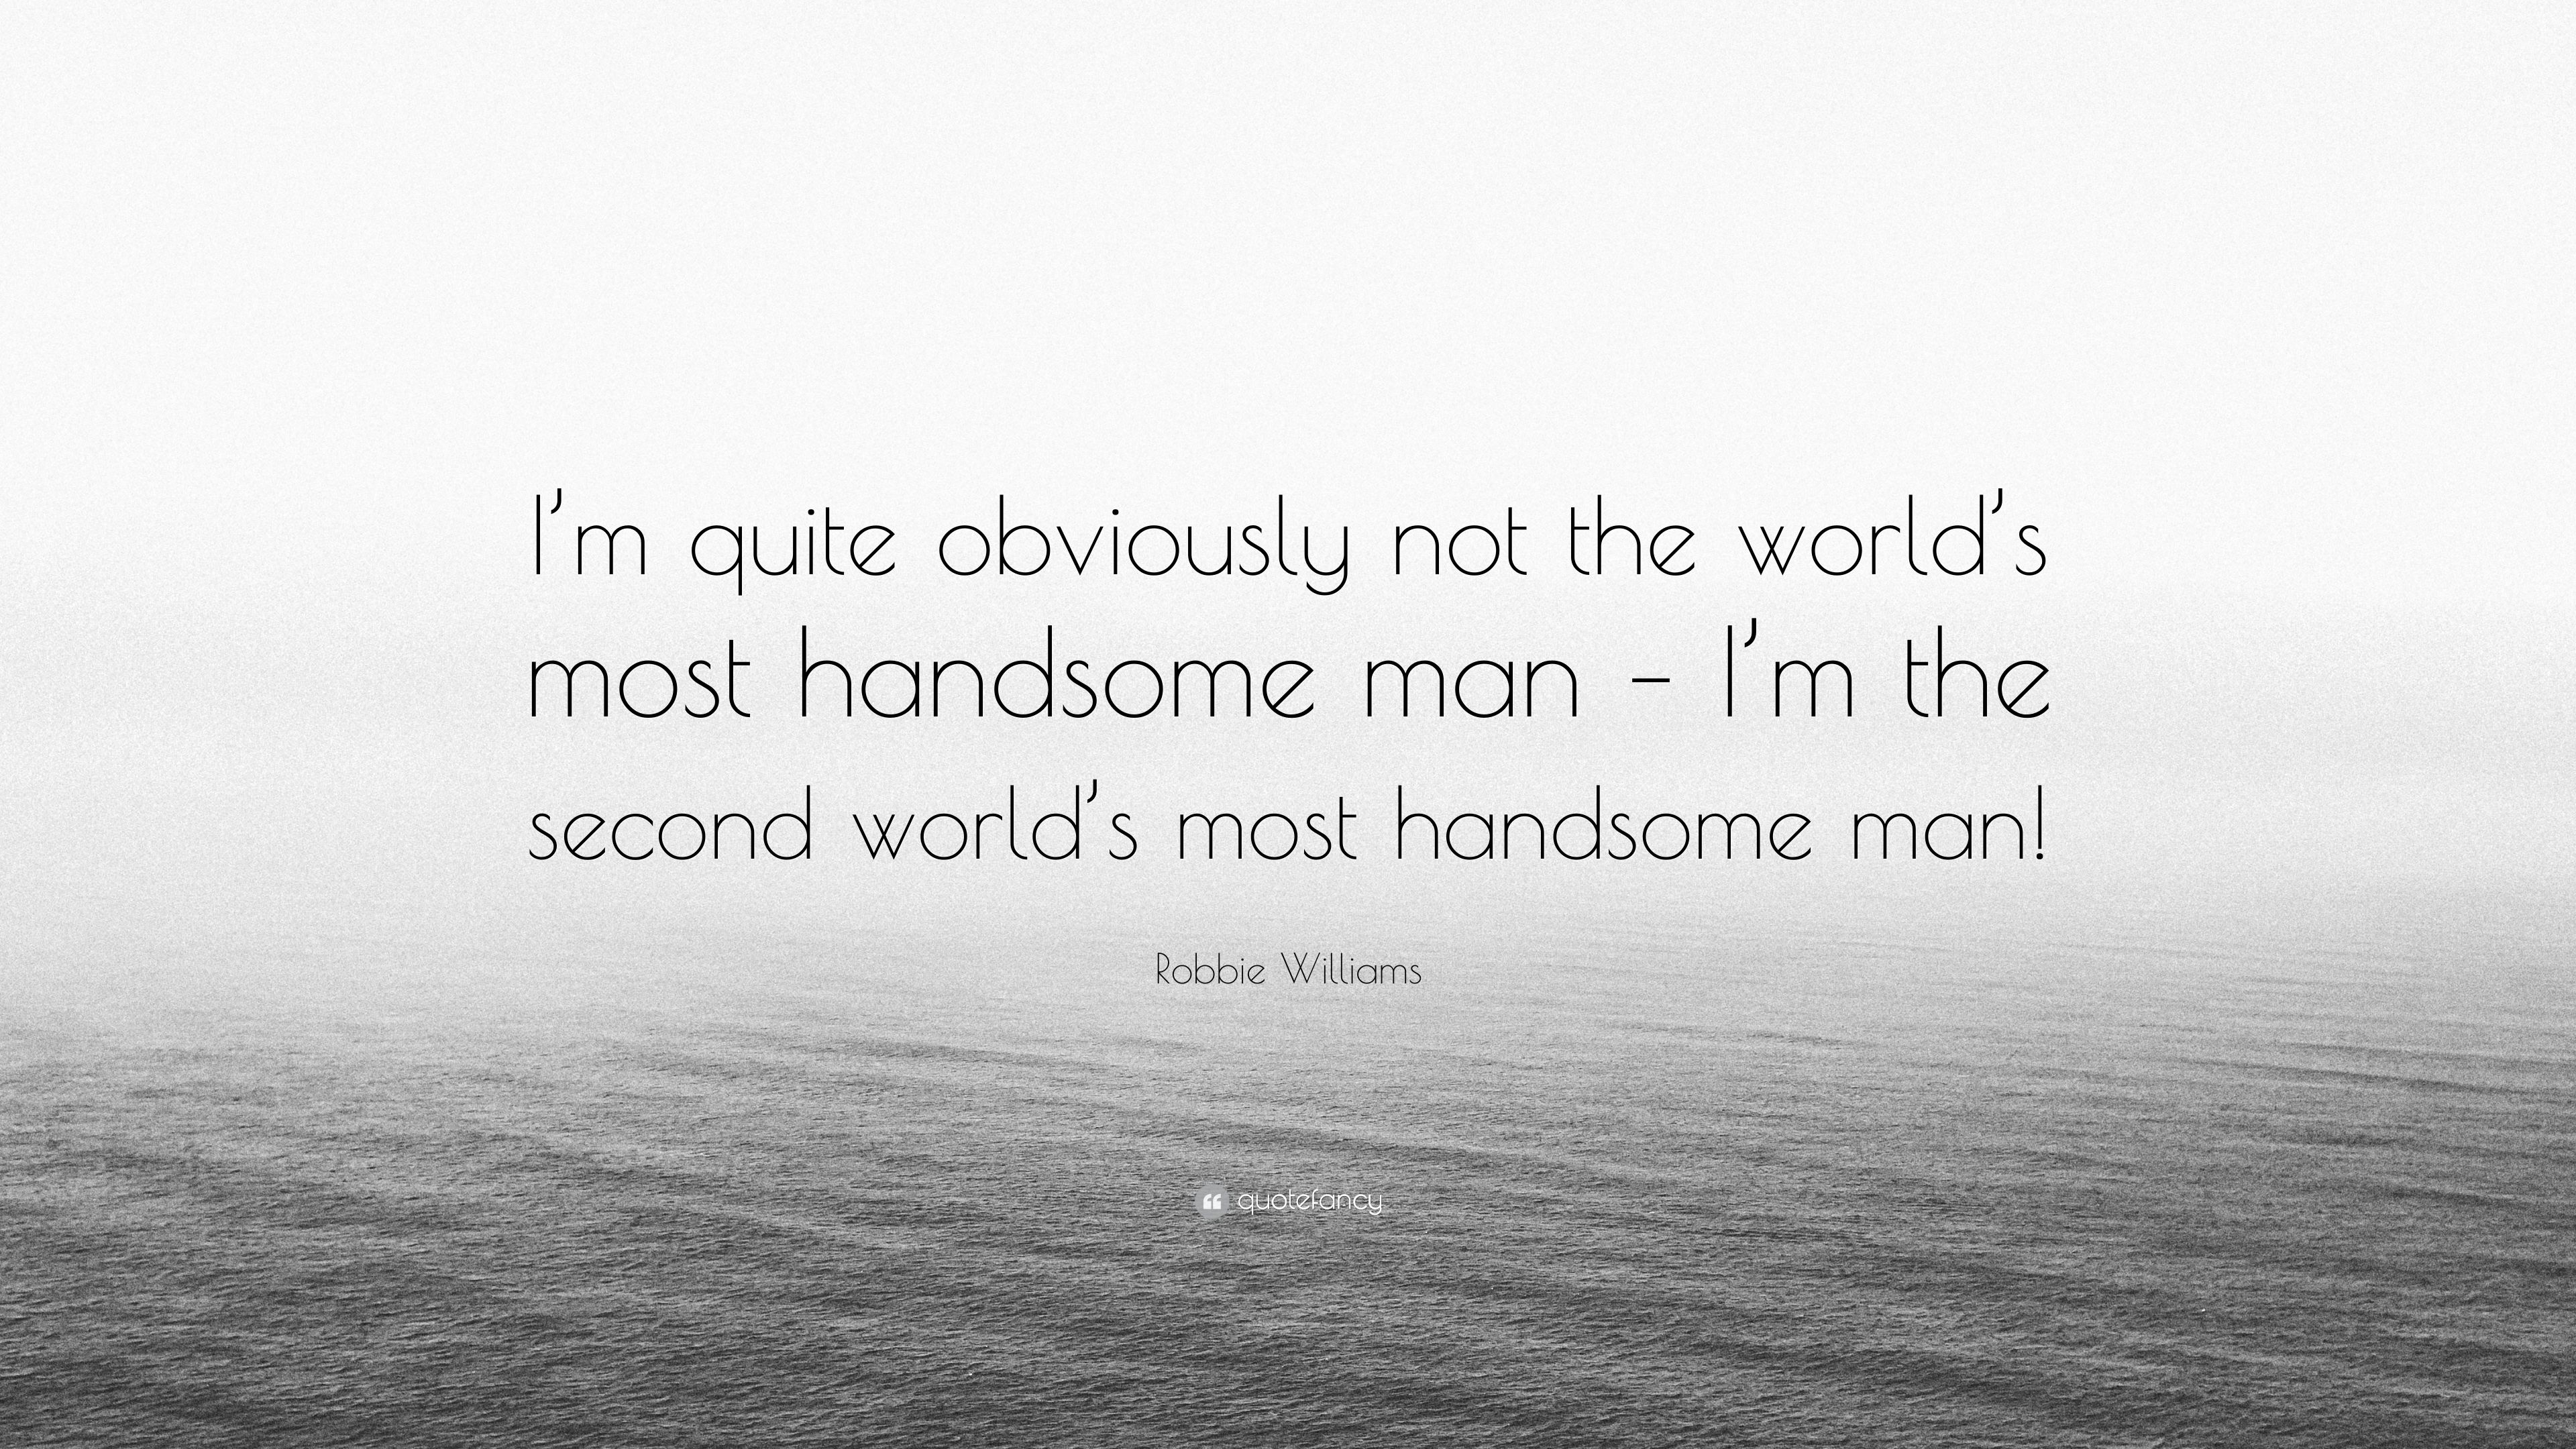 A handsome man quote